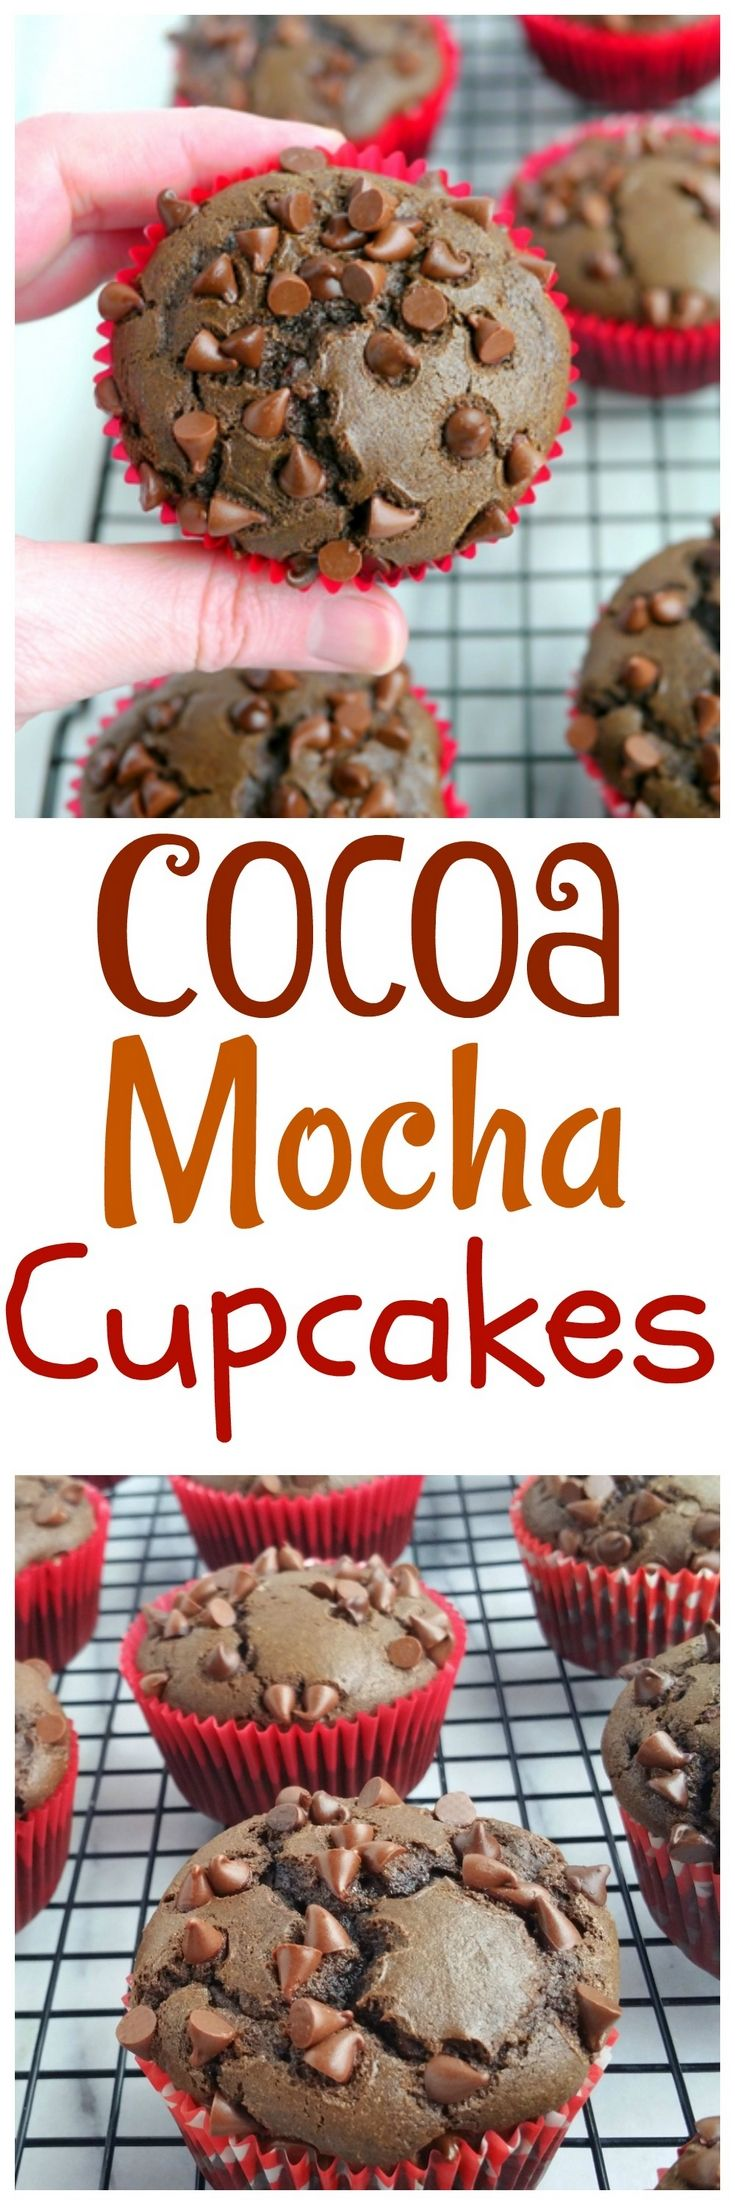 These Cocoa Mocha Cupcakes have a grown-up edge. N…Edit description